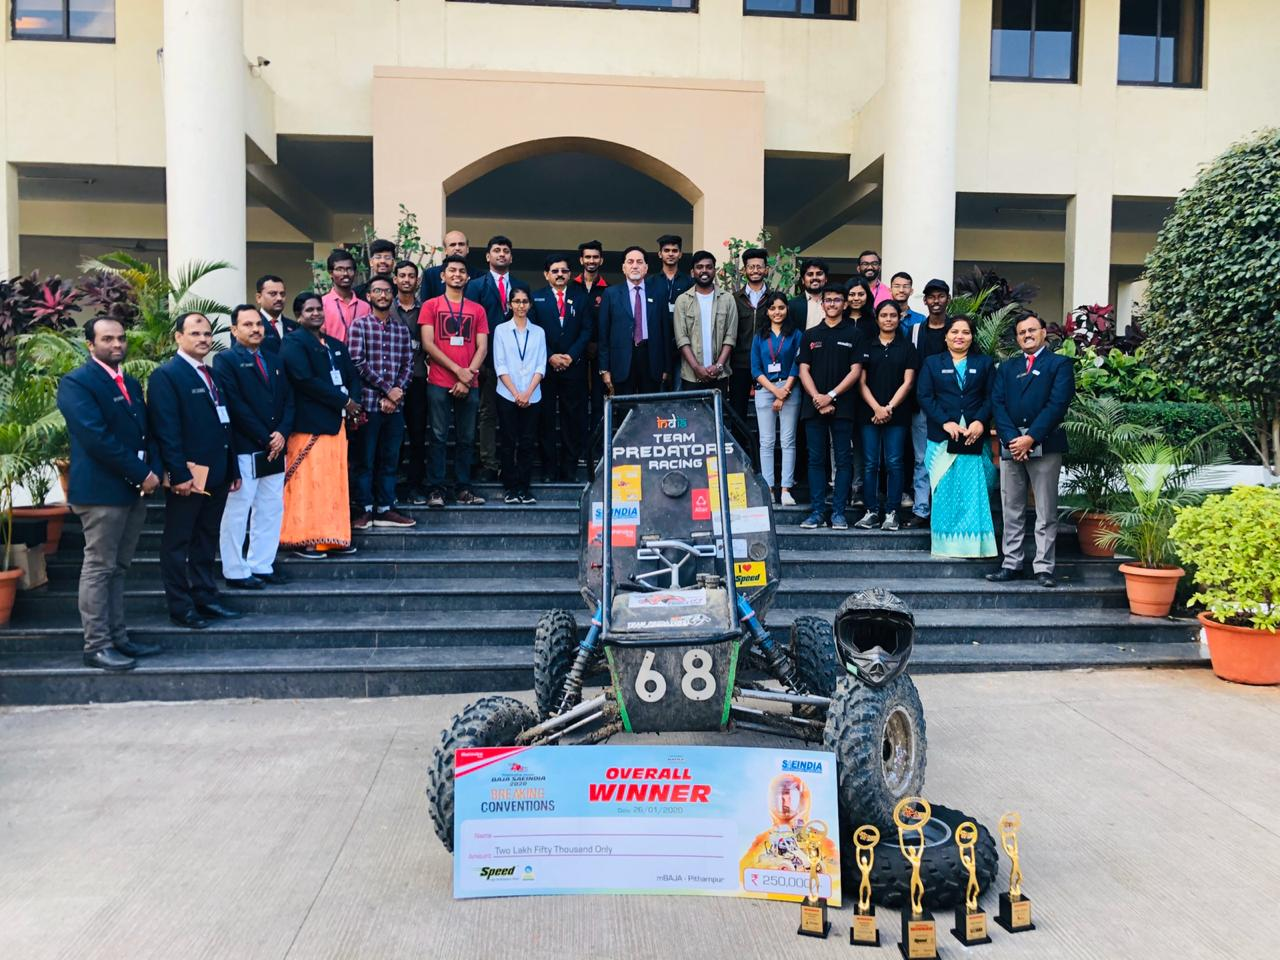 D Y Patil Engineering College, Akurdi students win acclaim for unique vehicle